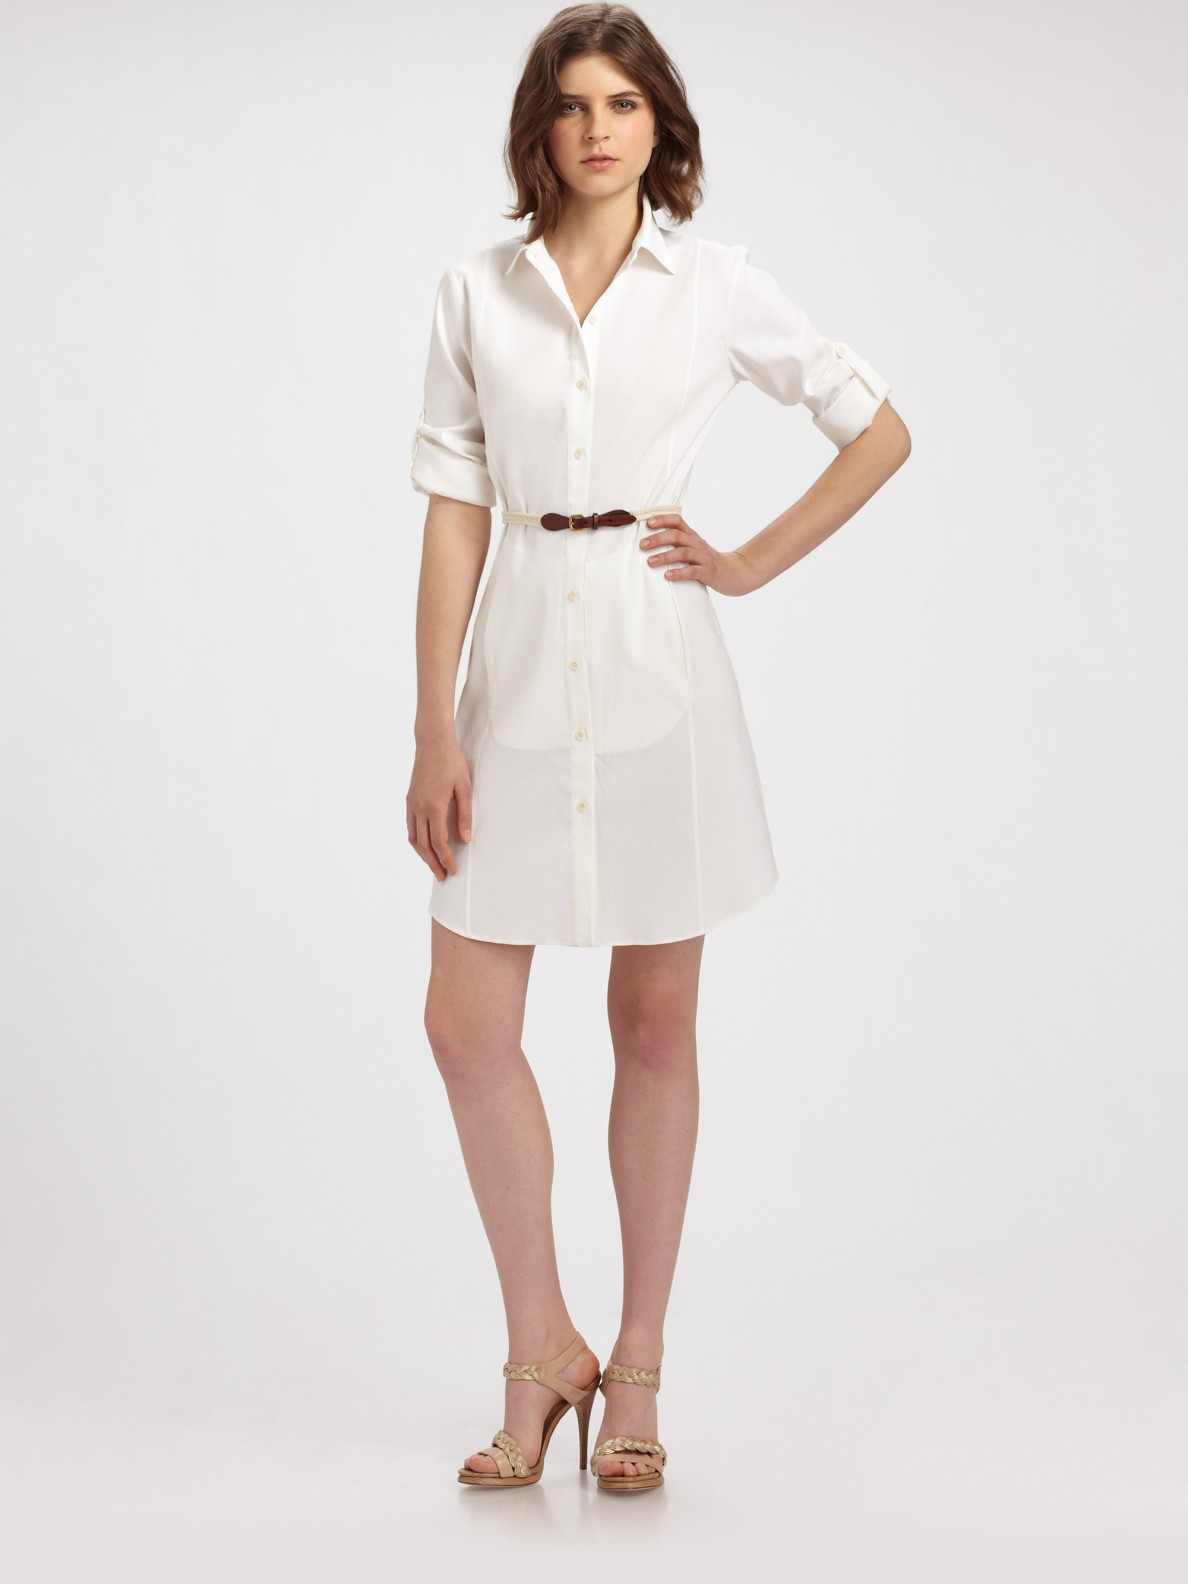 421901bb7d4d Lyst - Theory Lannie Button-down Shirt Dress in White